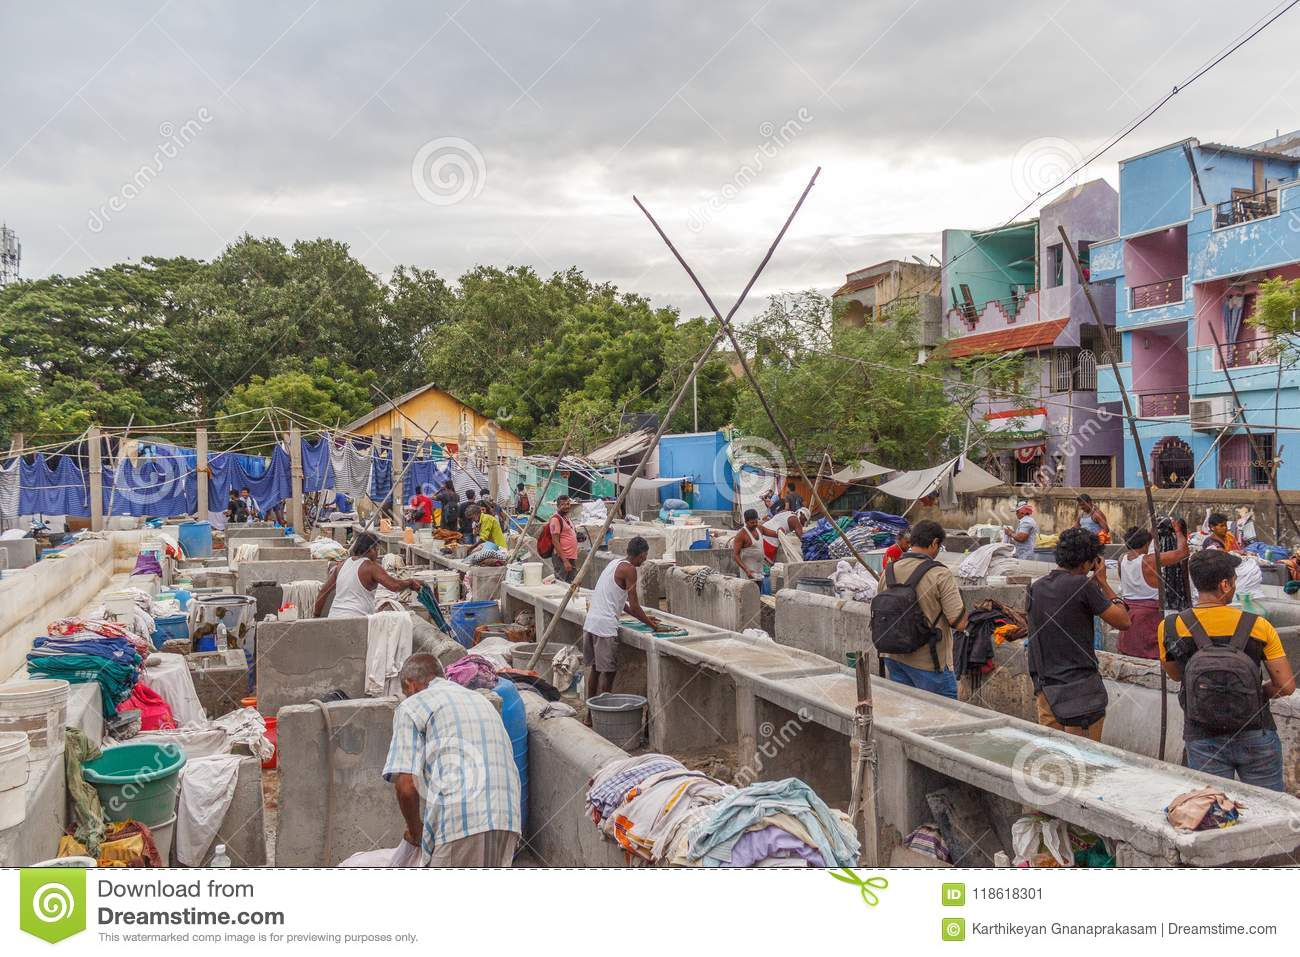 Dhobi Gana is a well known open air laundromat in Chennai India.